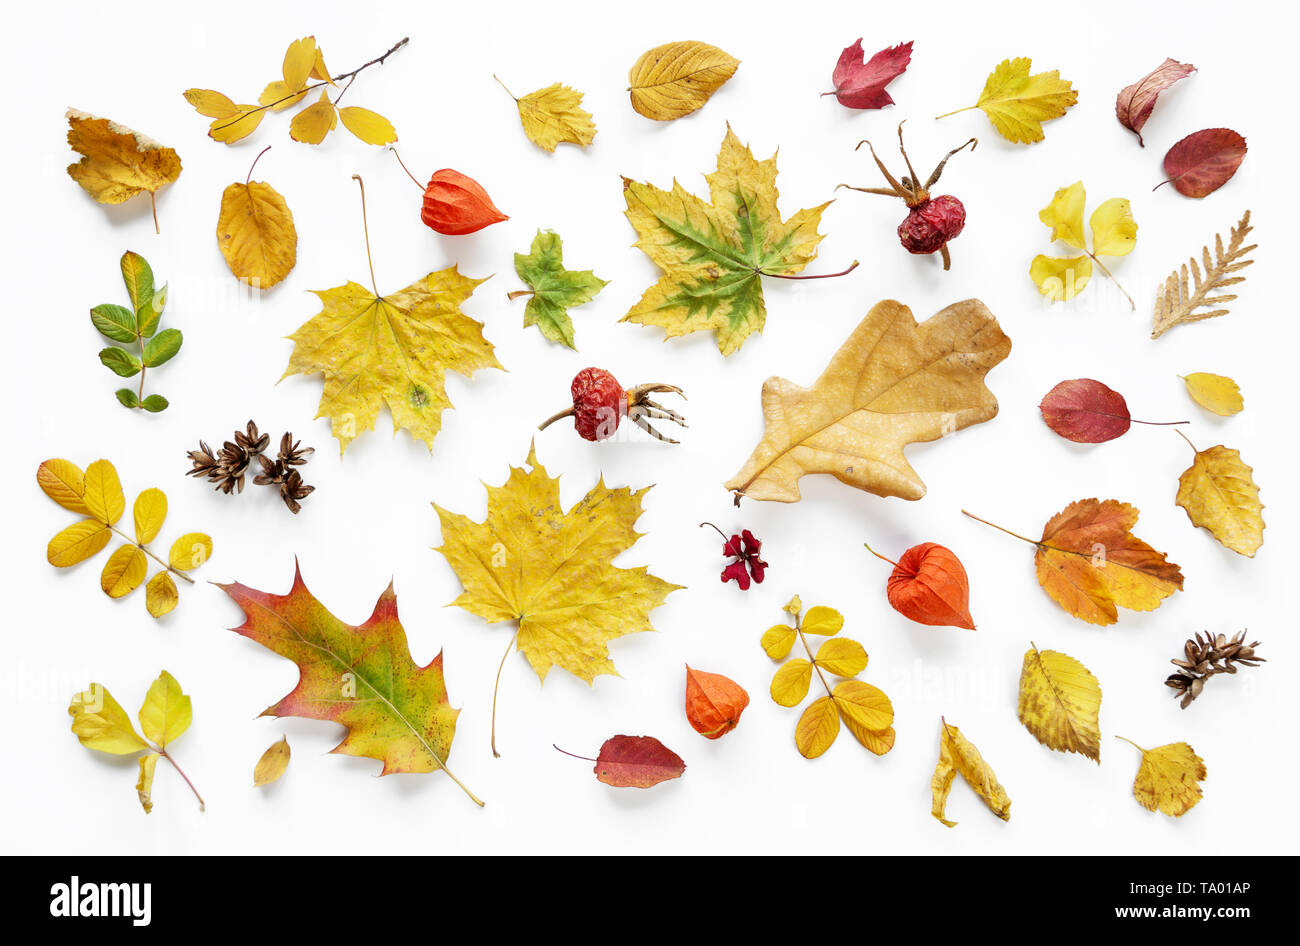 Colorful and bright background of fallen autumn leaves on white Stock Photo